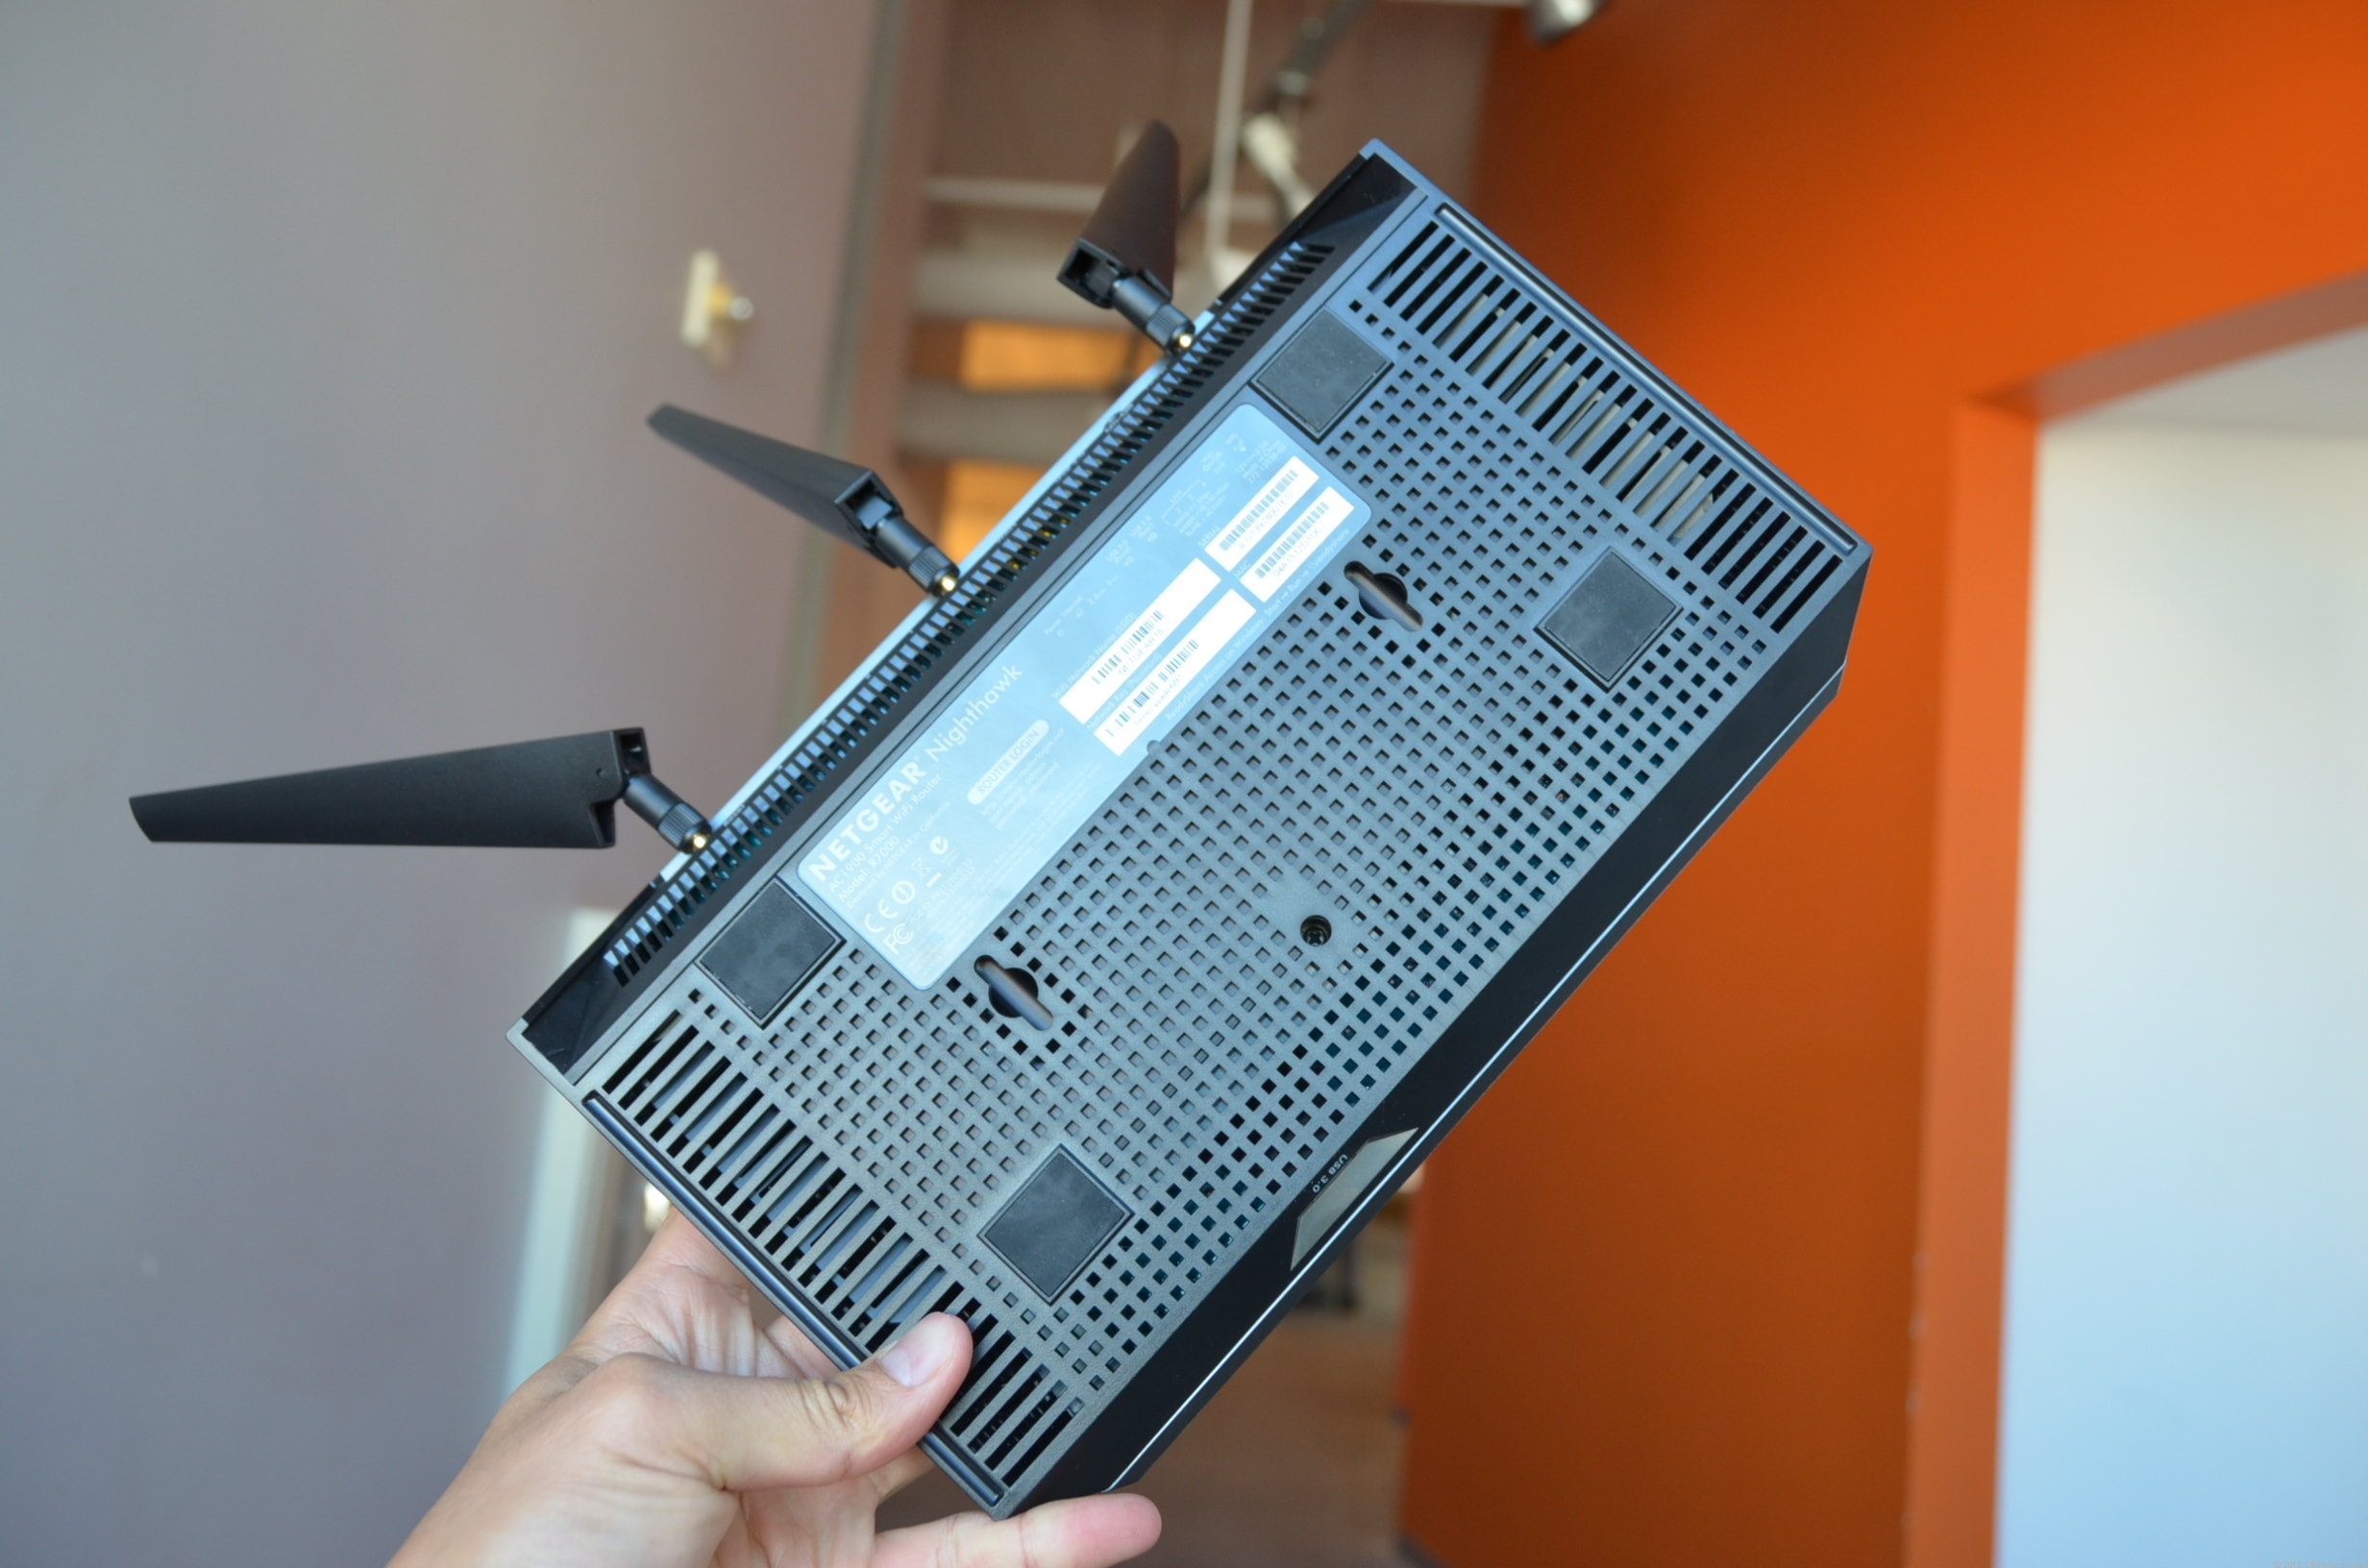 The R7000 router is huge but now can be mounted on a wall.